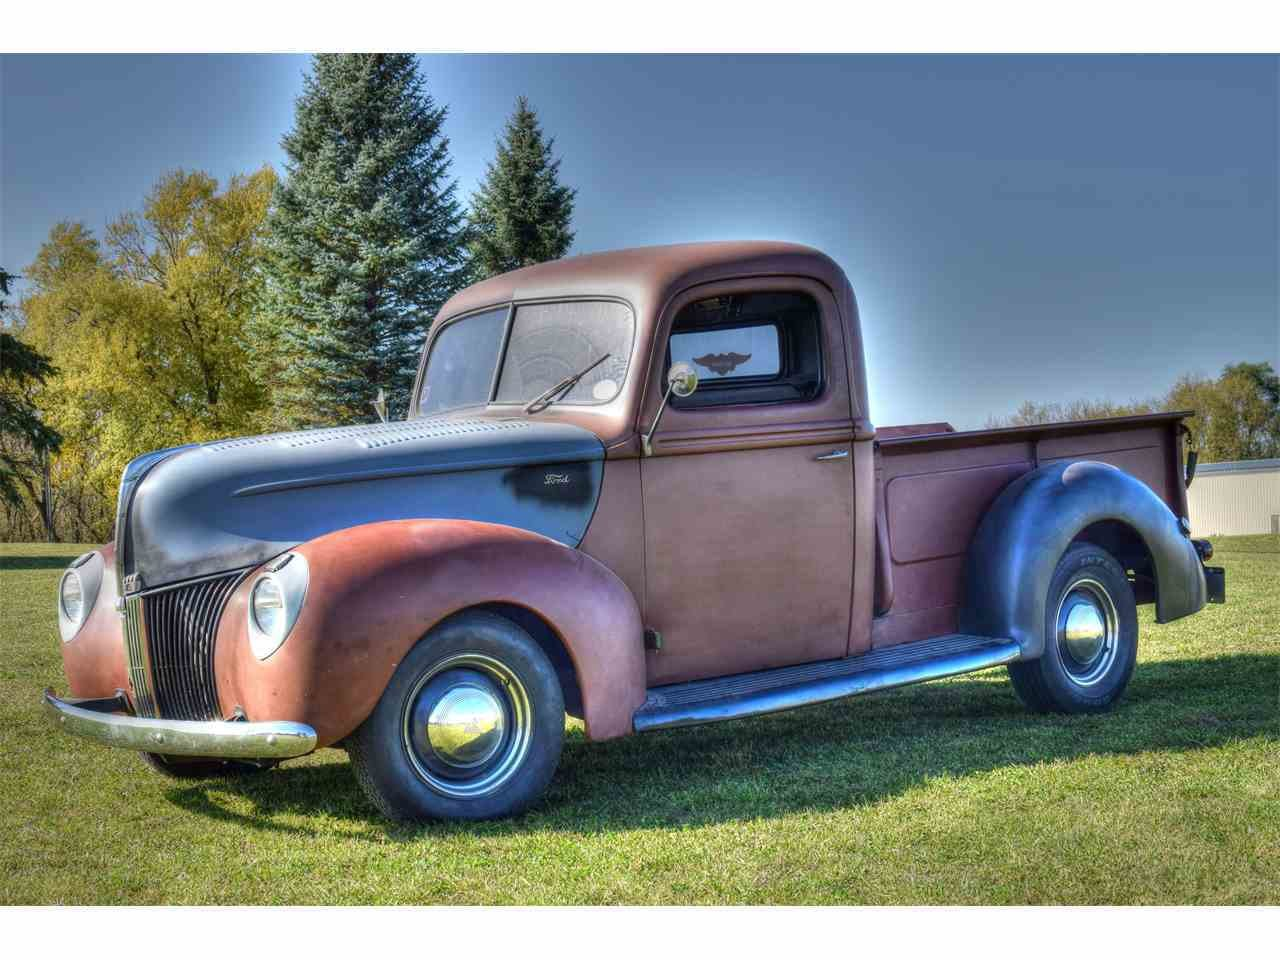 New 1940 Ford Pickup For Sale Classiccars Com Cc 1032652 On This Month Original 1024 x 768